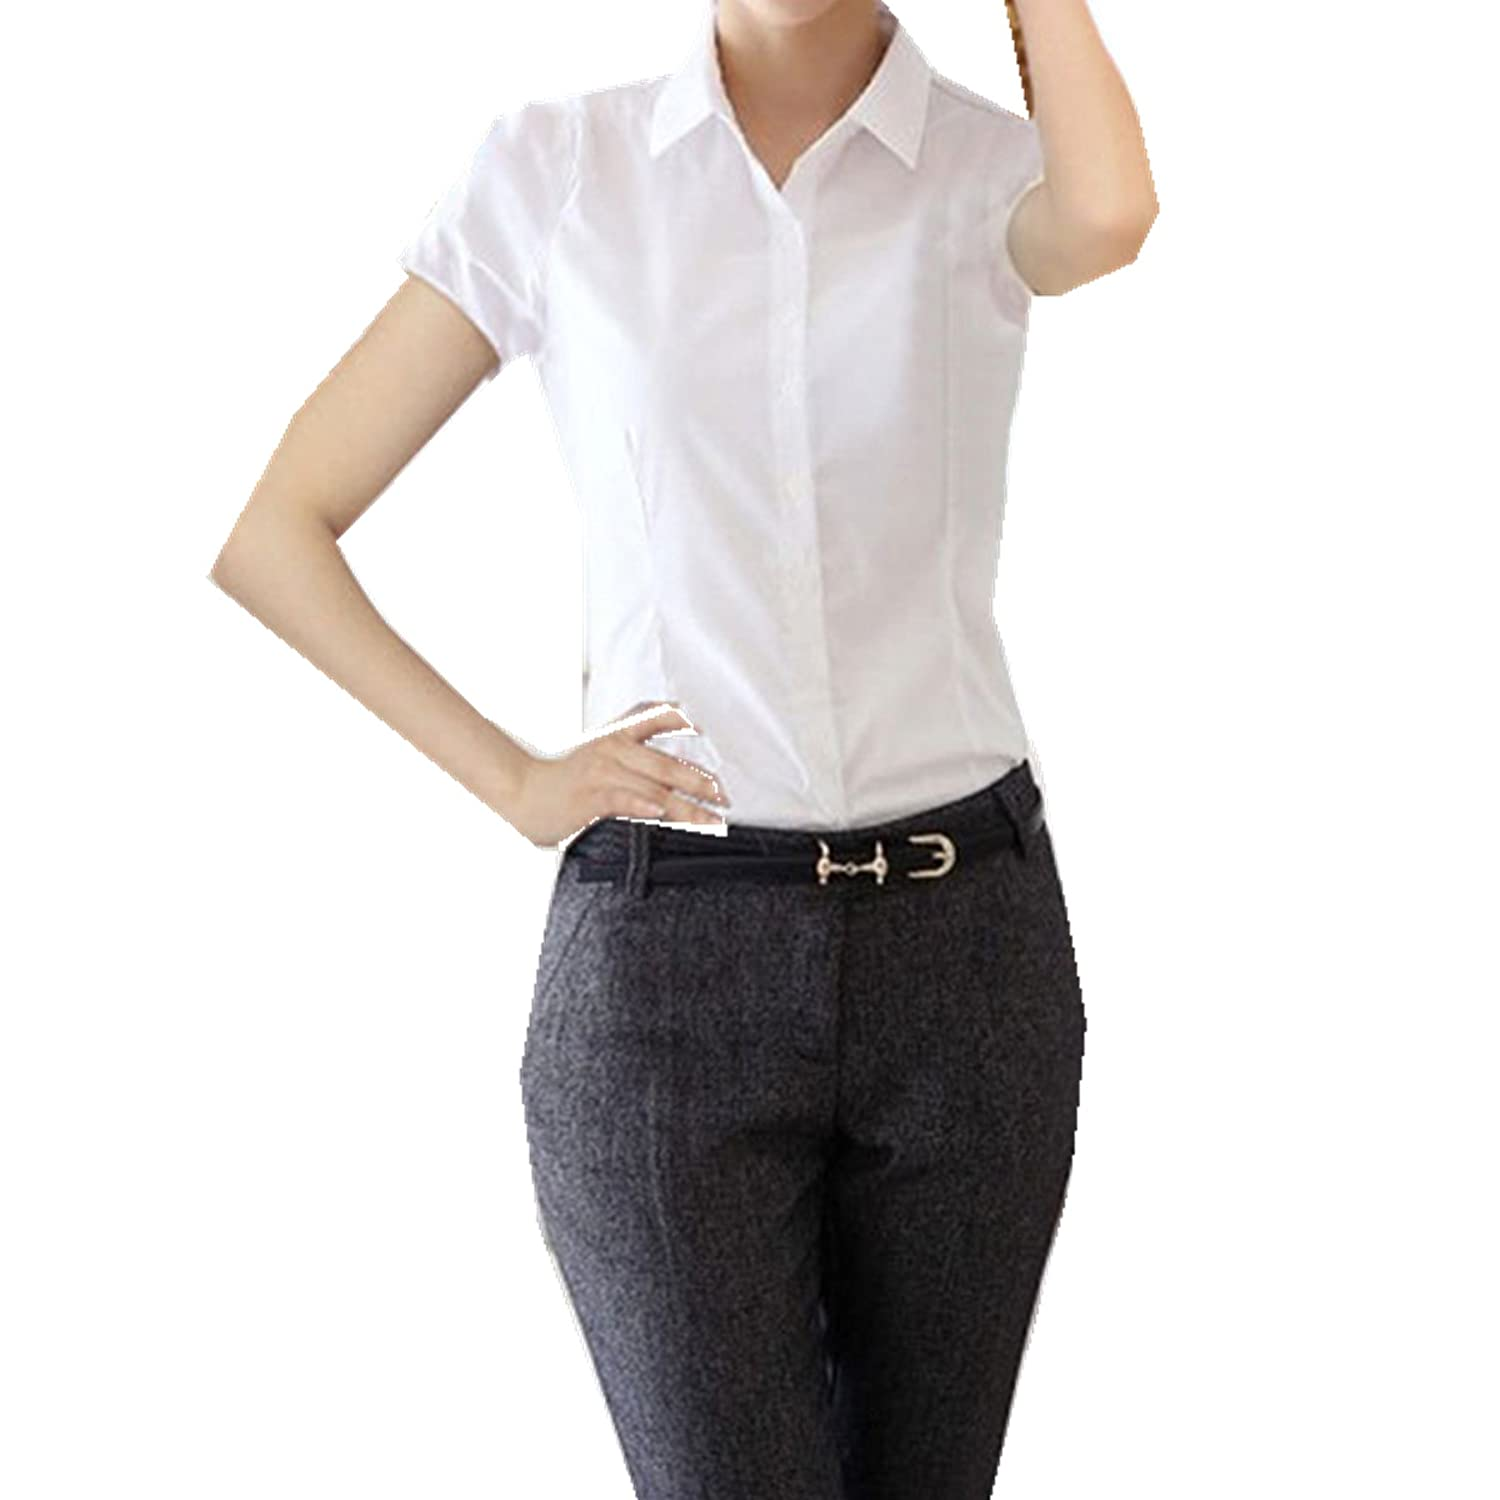 60ef3aceea52a Taiduosheng Women White Slim fit Button Down Shirt with bow tie Short  Sleeve OL Blouse at Amazon Women s Clothing store